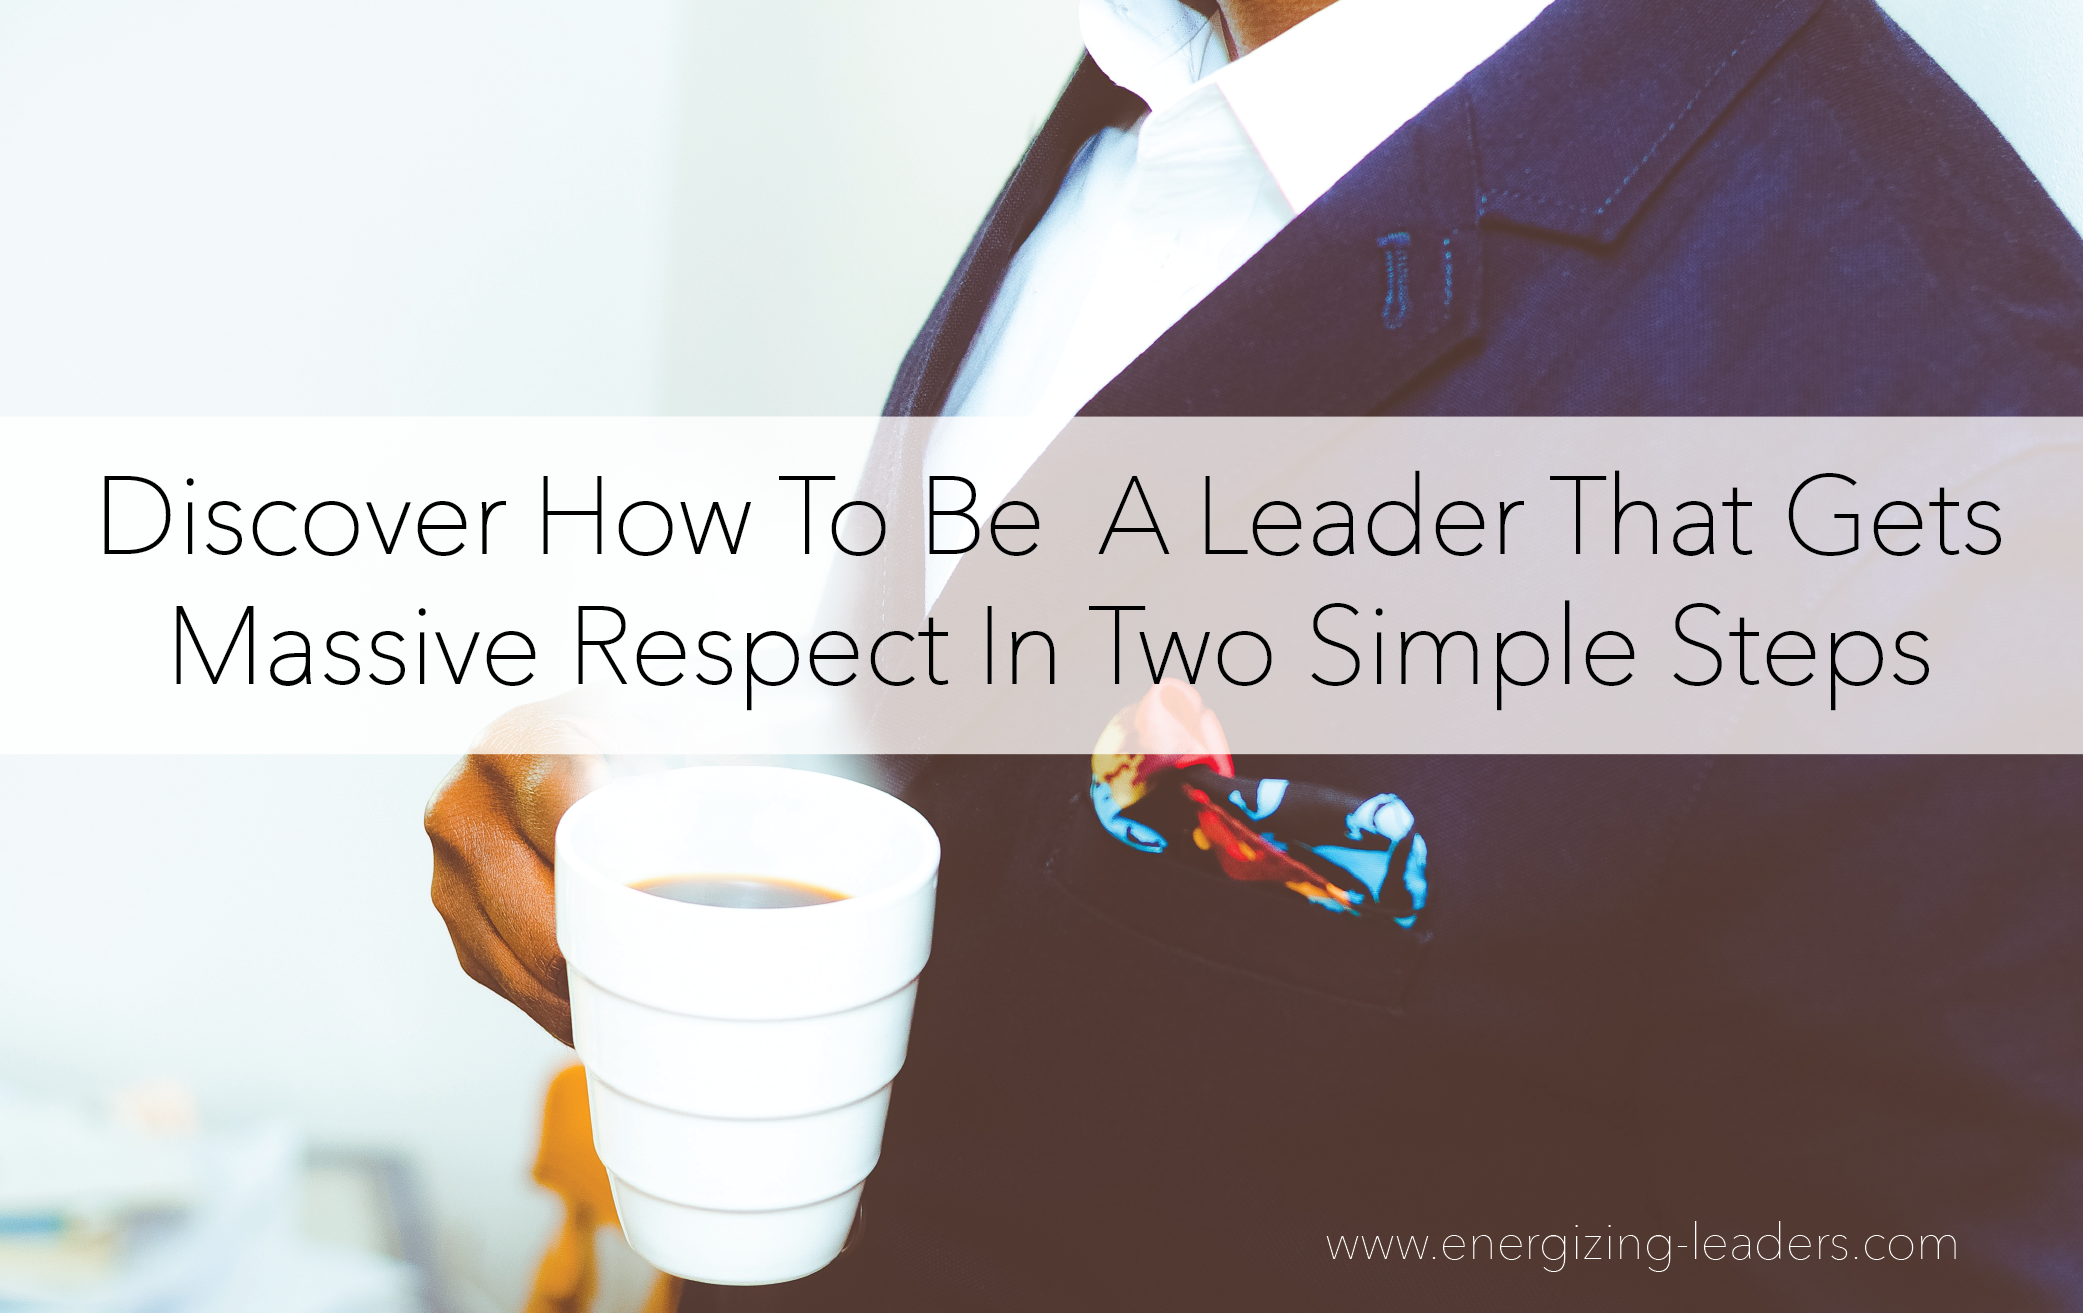 Discover How to Be A Leader That Gets Massive Respect